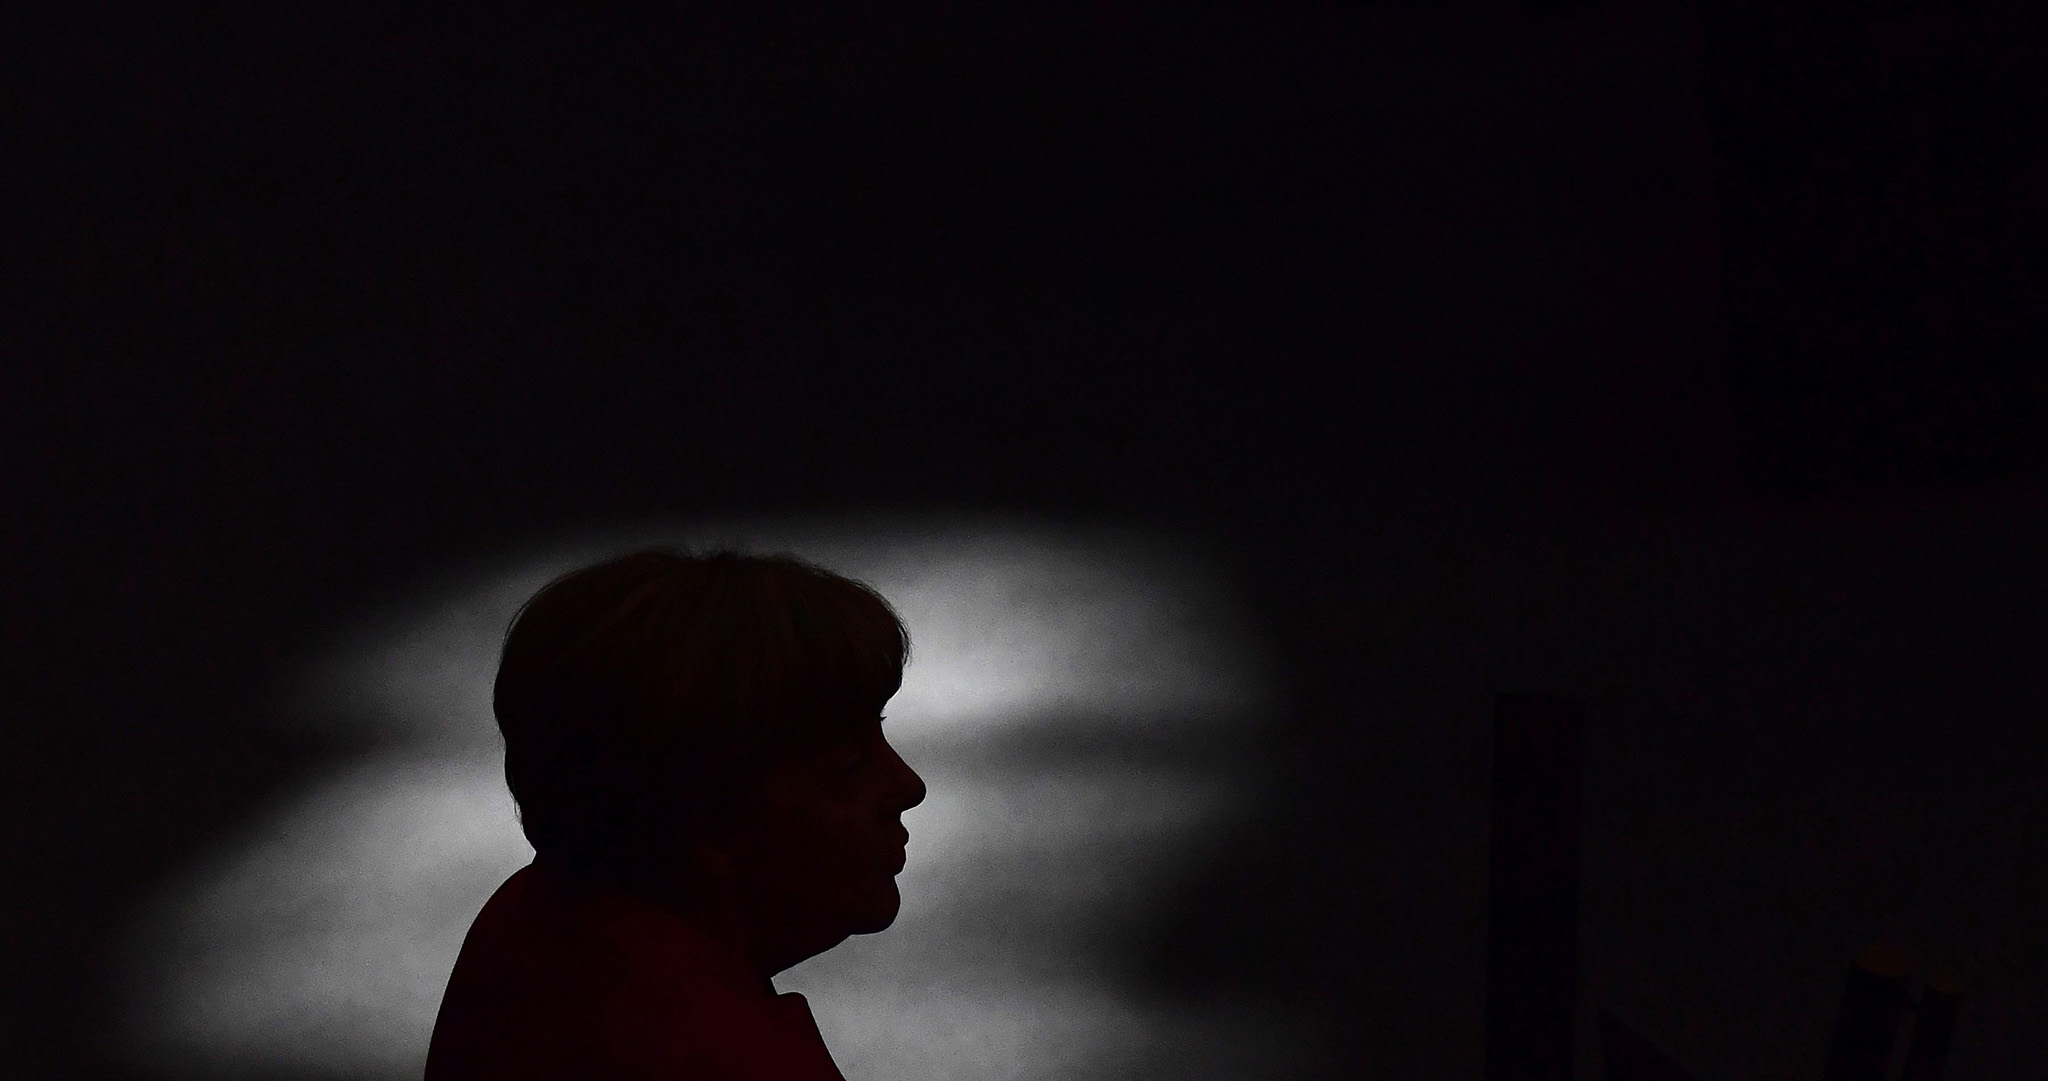 German Chancellor Angela Merkel is silhouetted as she gives a speech during a session of the German Bundestag (lower house of parliament) in Berlin on September 7, 2016. / AFP PHOTO / TOBIAS SCHWARZTOBIAS SCHWARZ/AFP/Getty Images